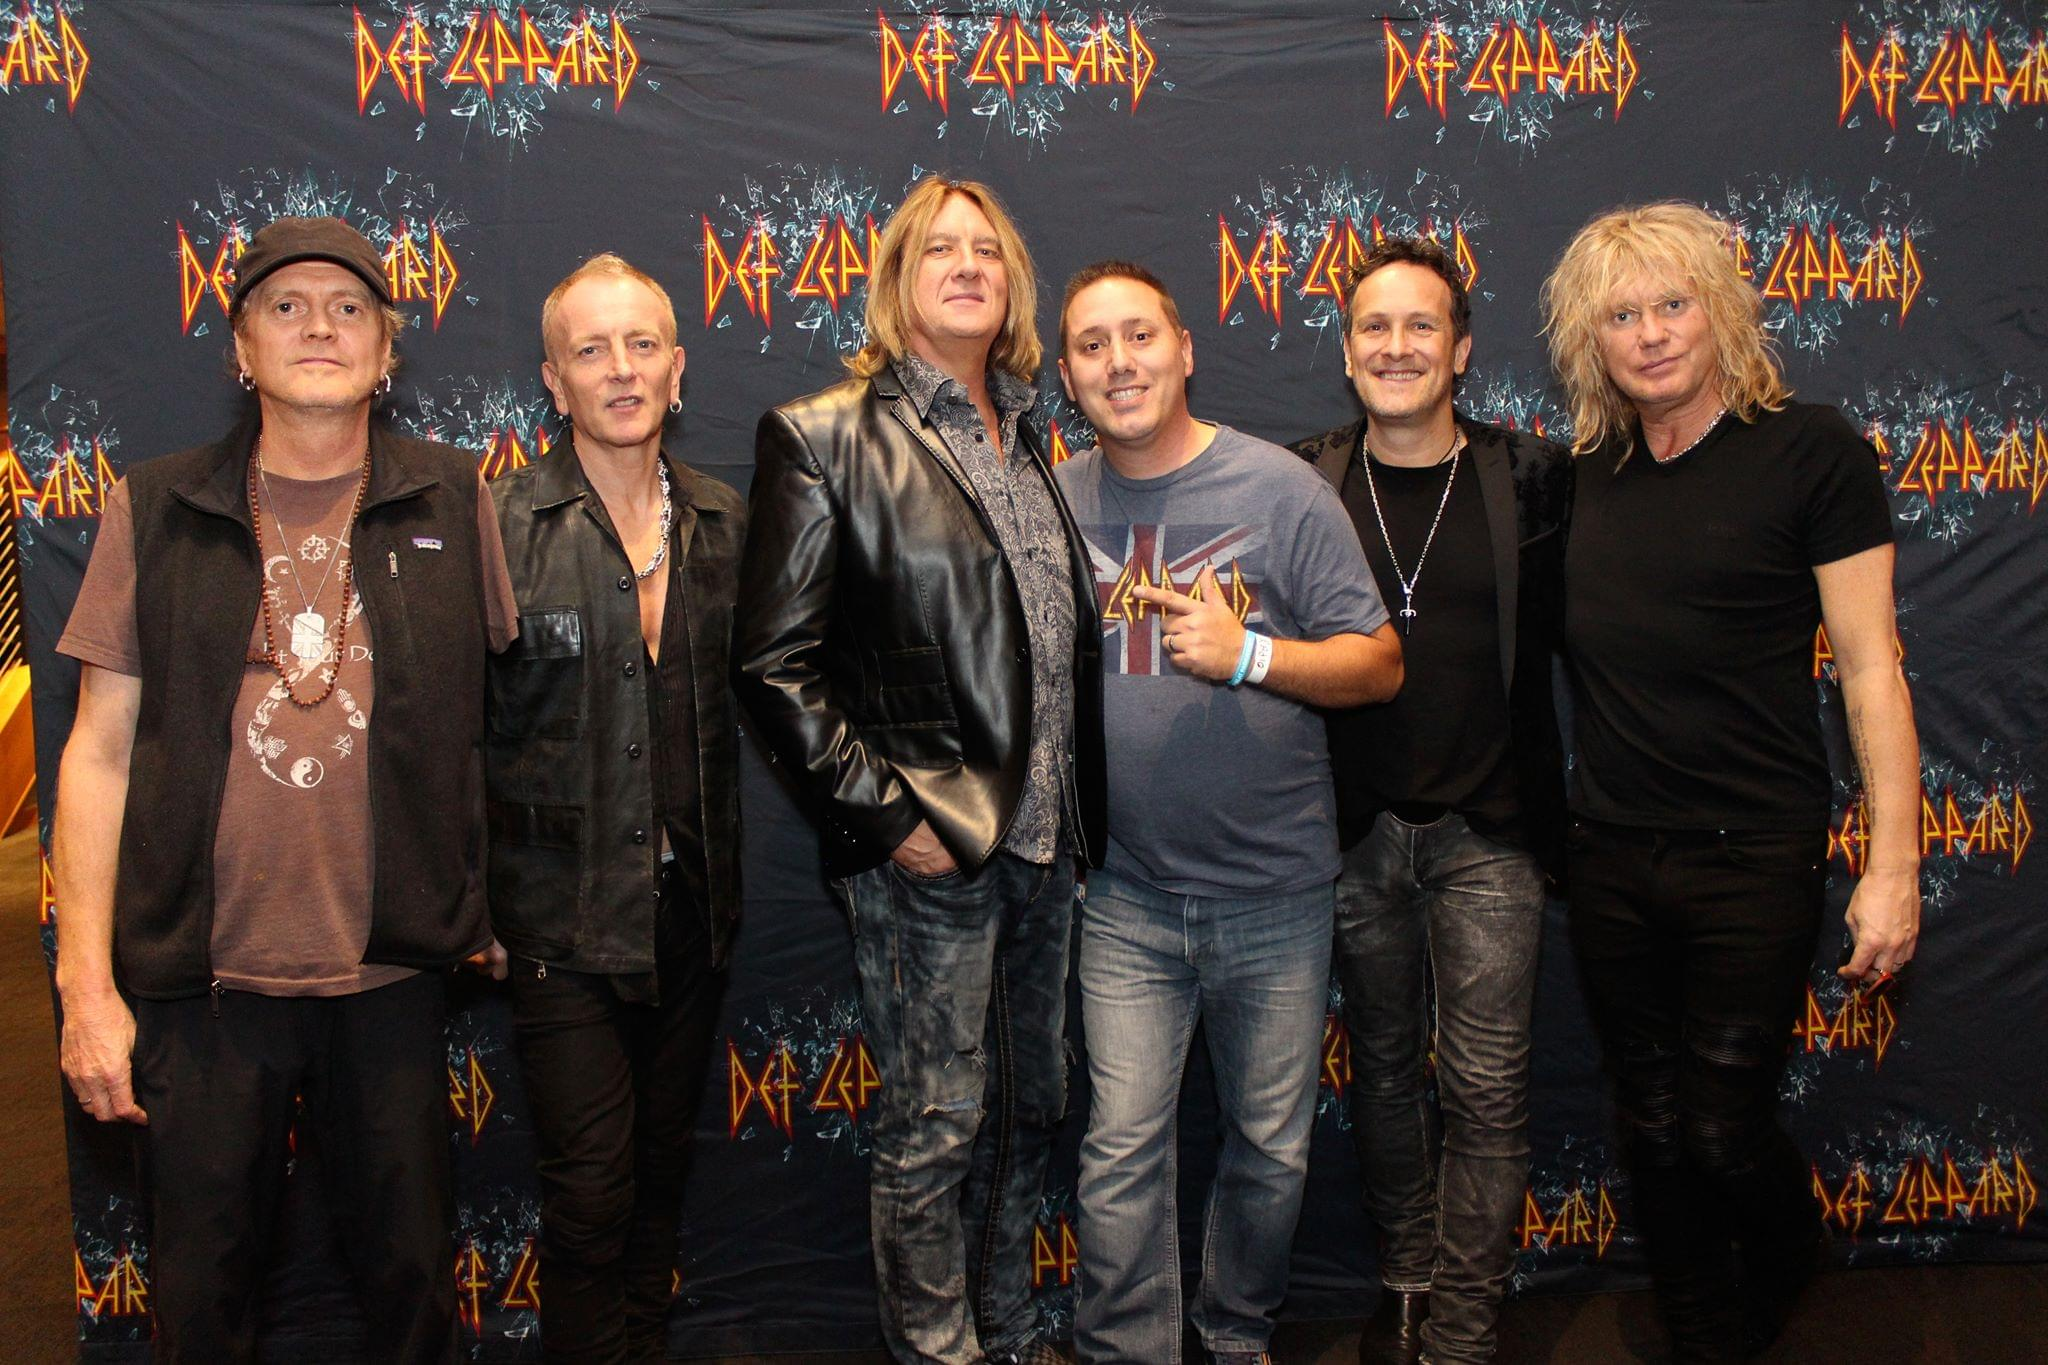 Joe Elliott from Def Leppard Talks New Music, Rock Hall and More [AUDIO]